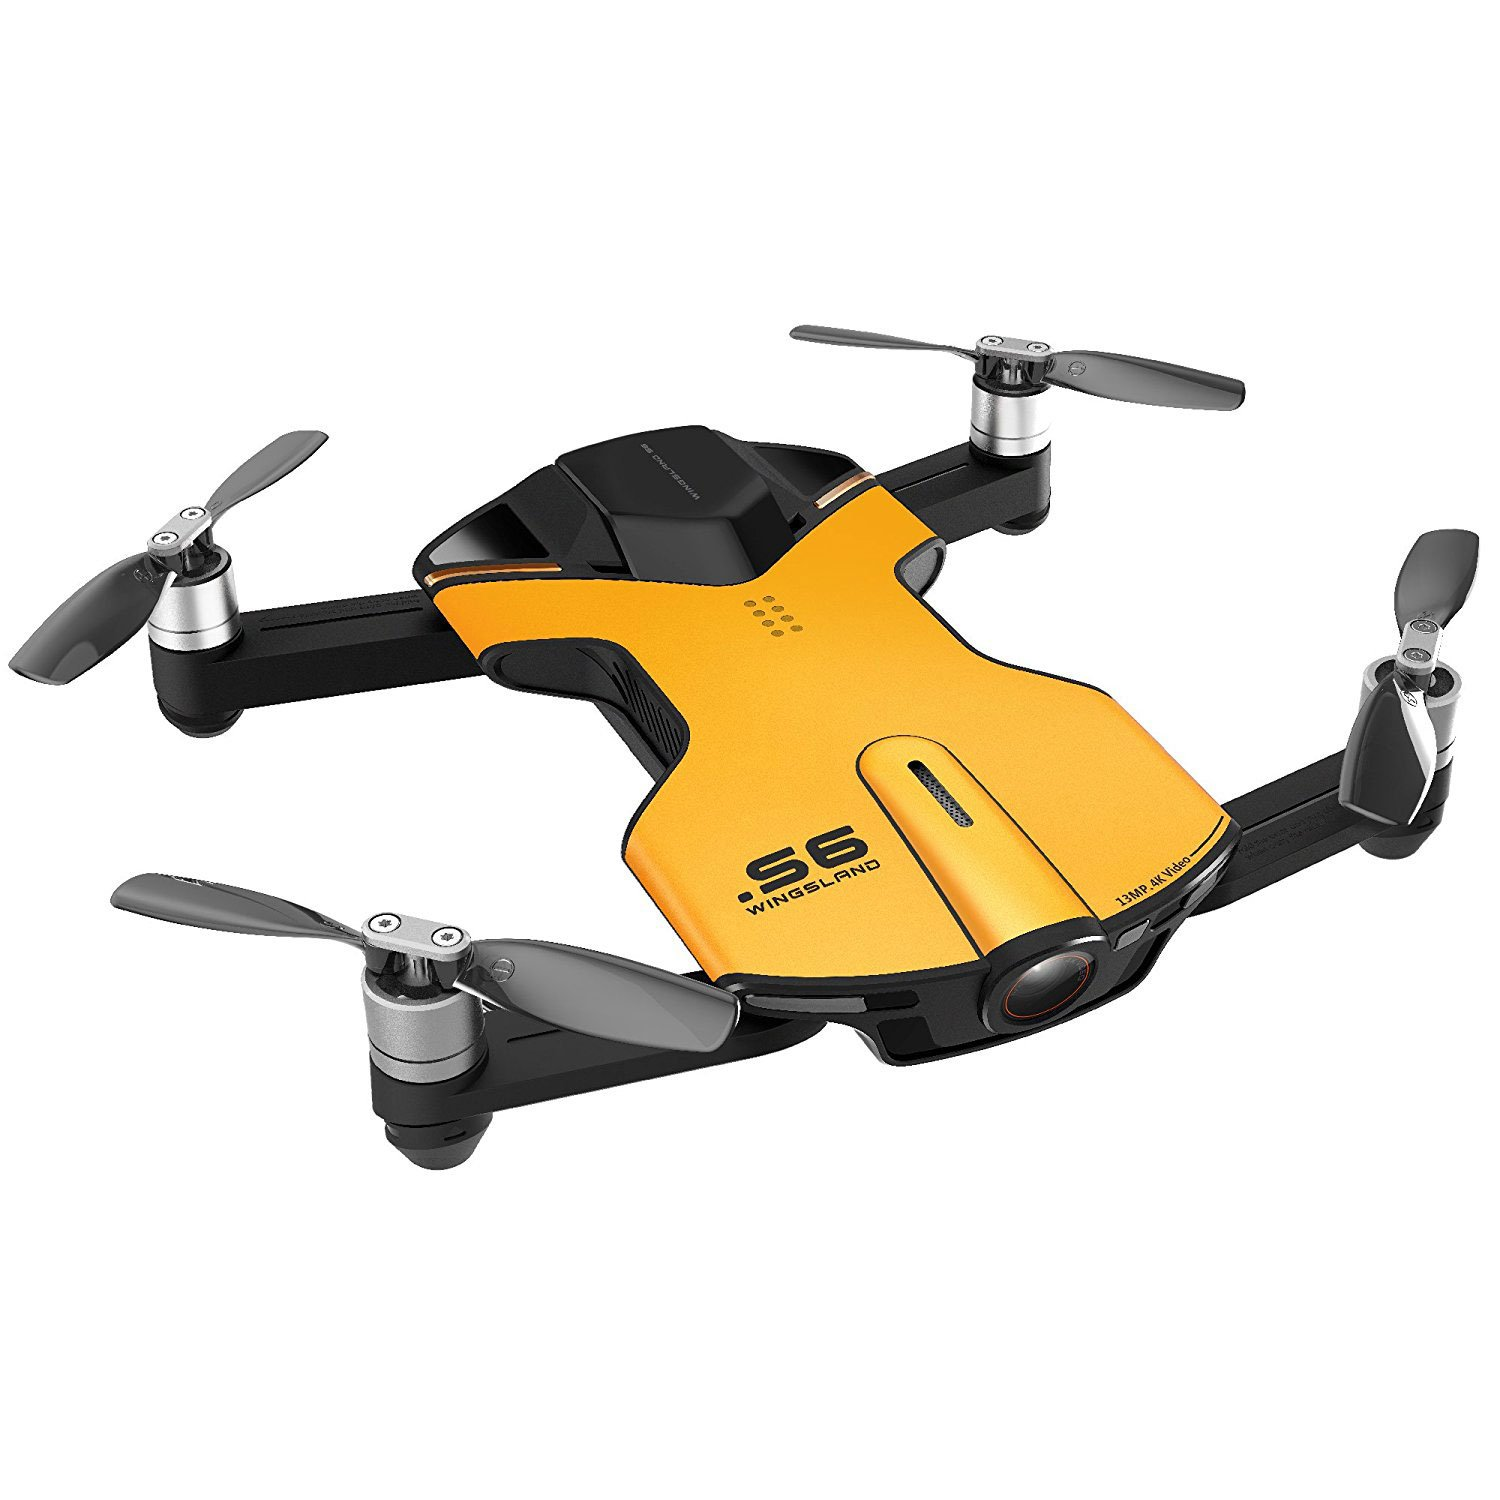 Wingsland S6 Drone Outdoor Edition 4K Pocket Drone Electronics, Yellow (S6 Yellow)